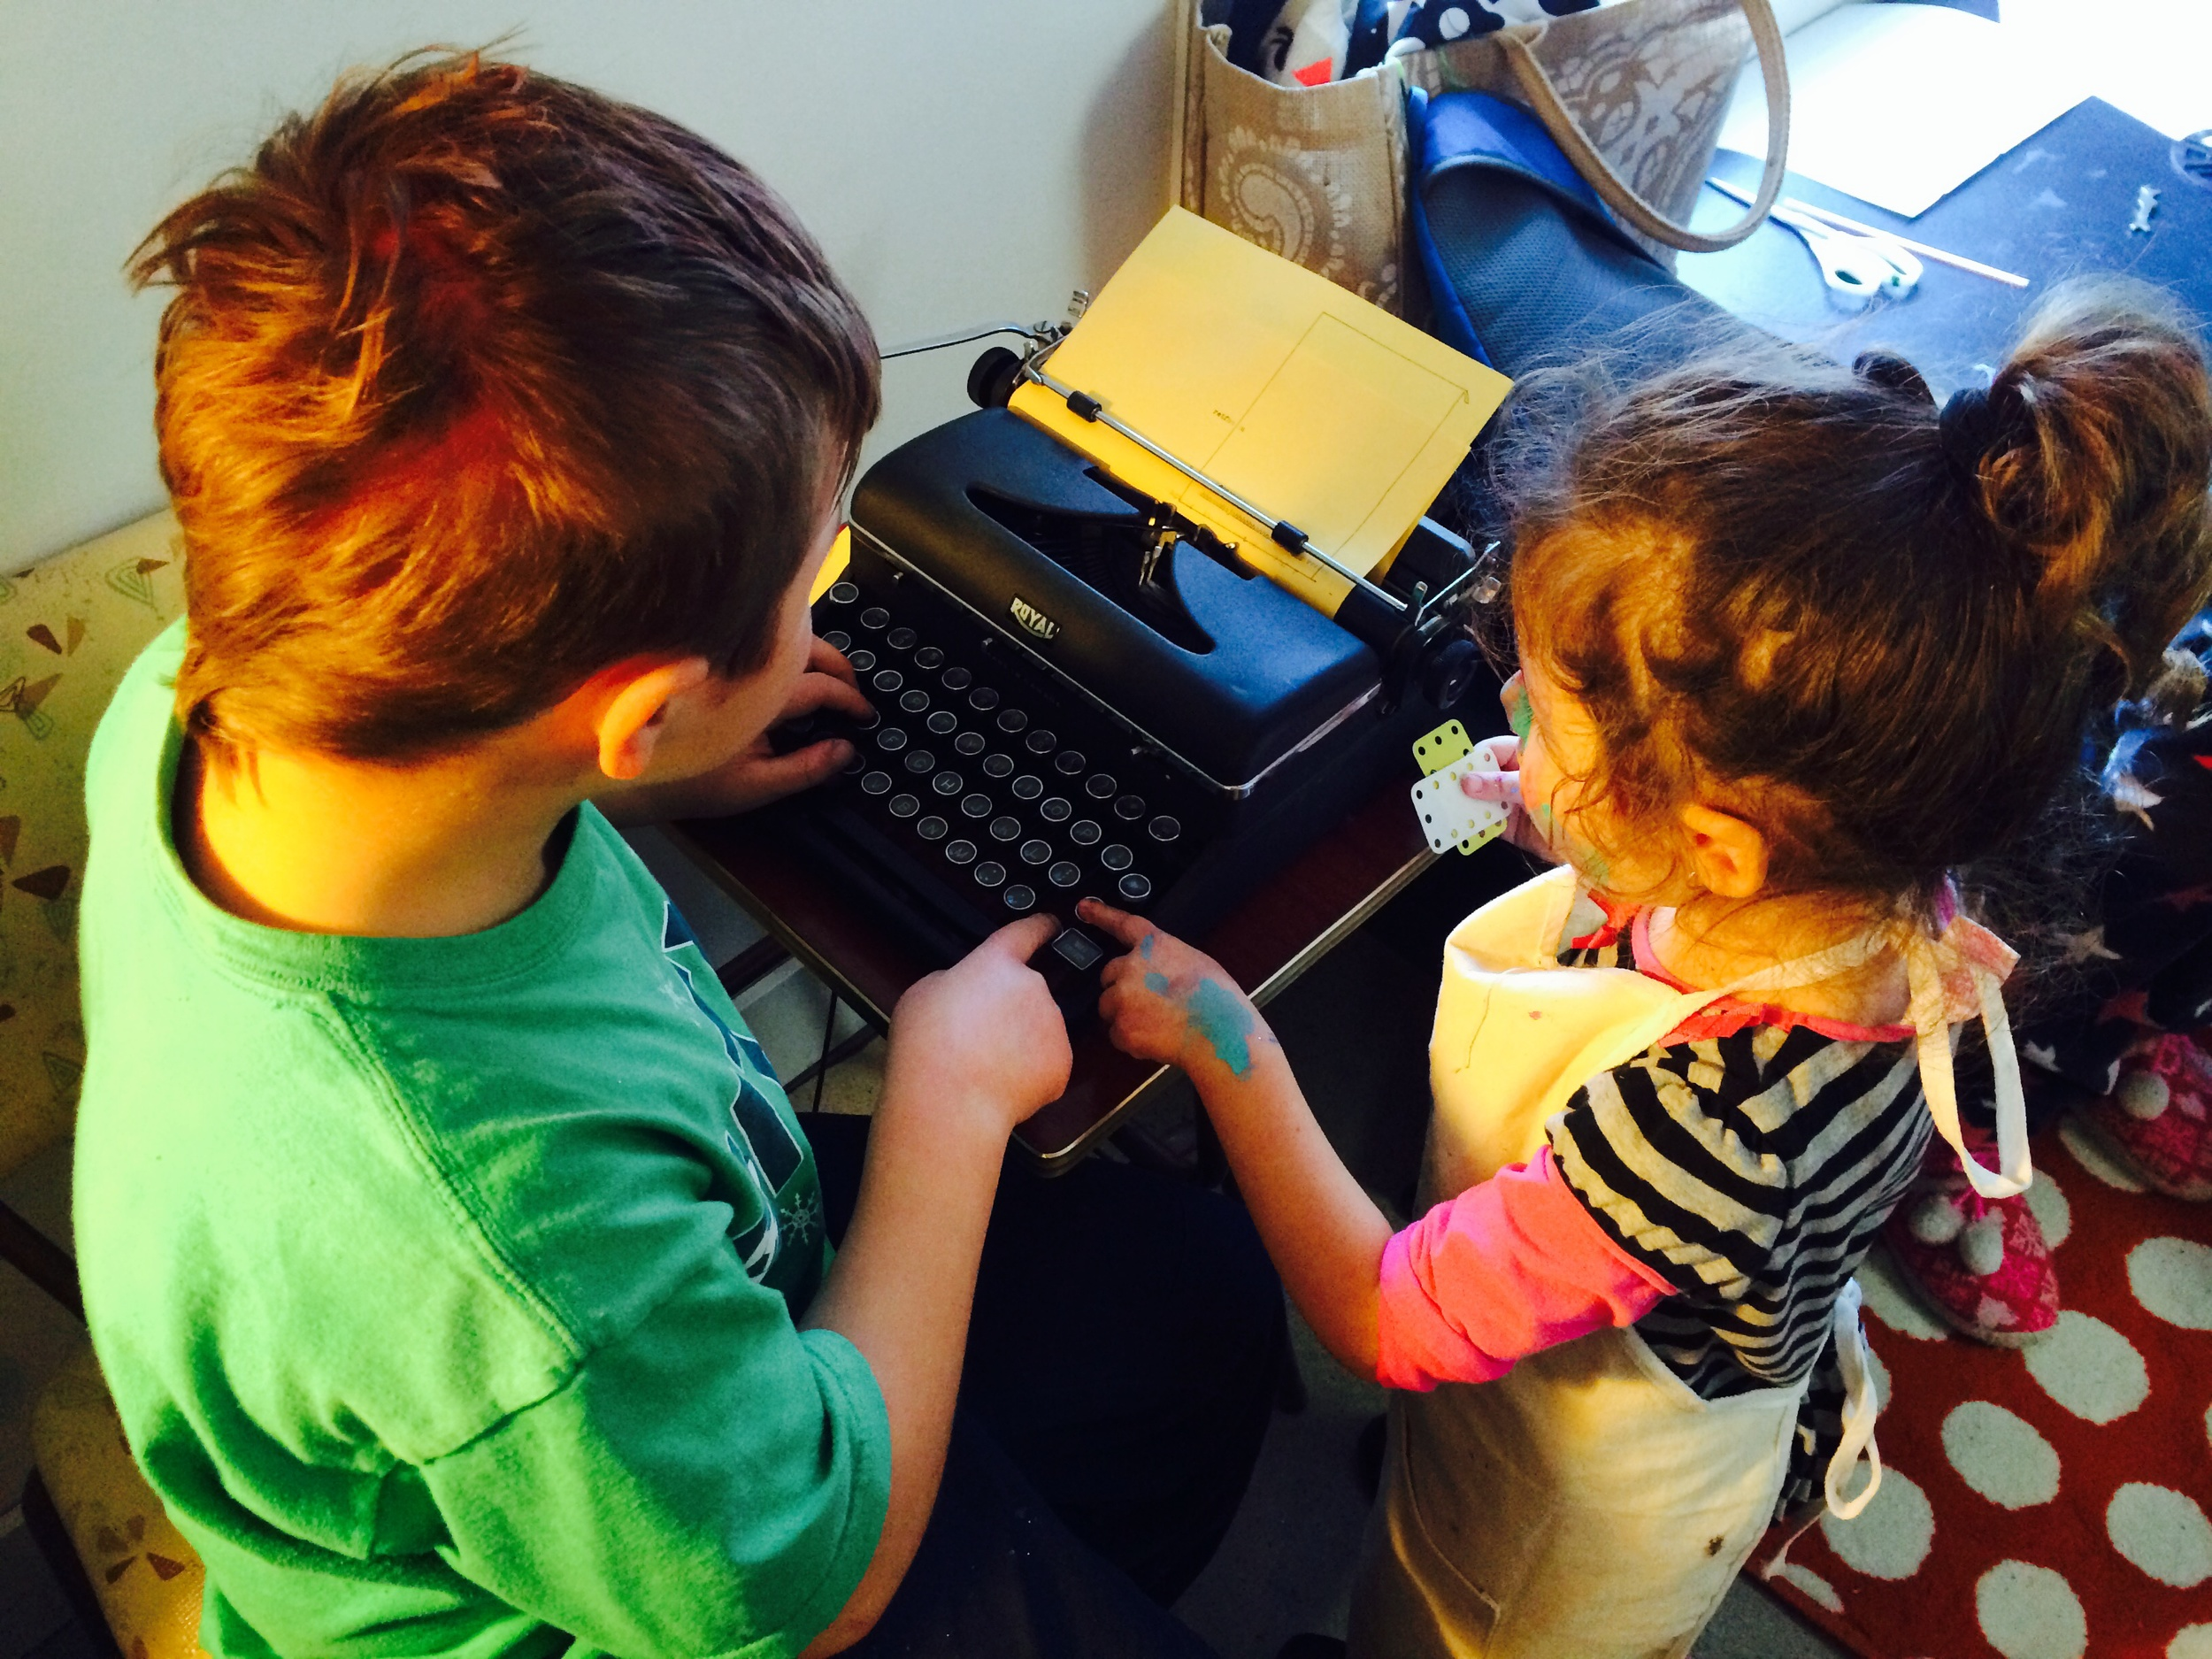 Hugely popular type writer for letter, poetry explorations!